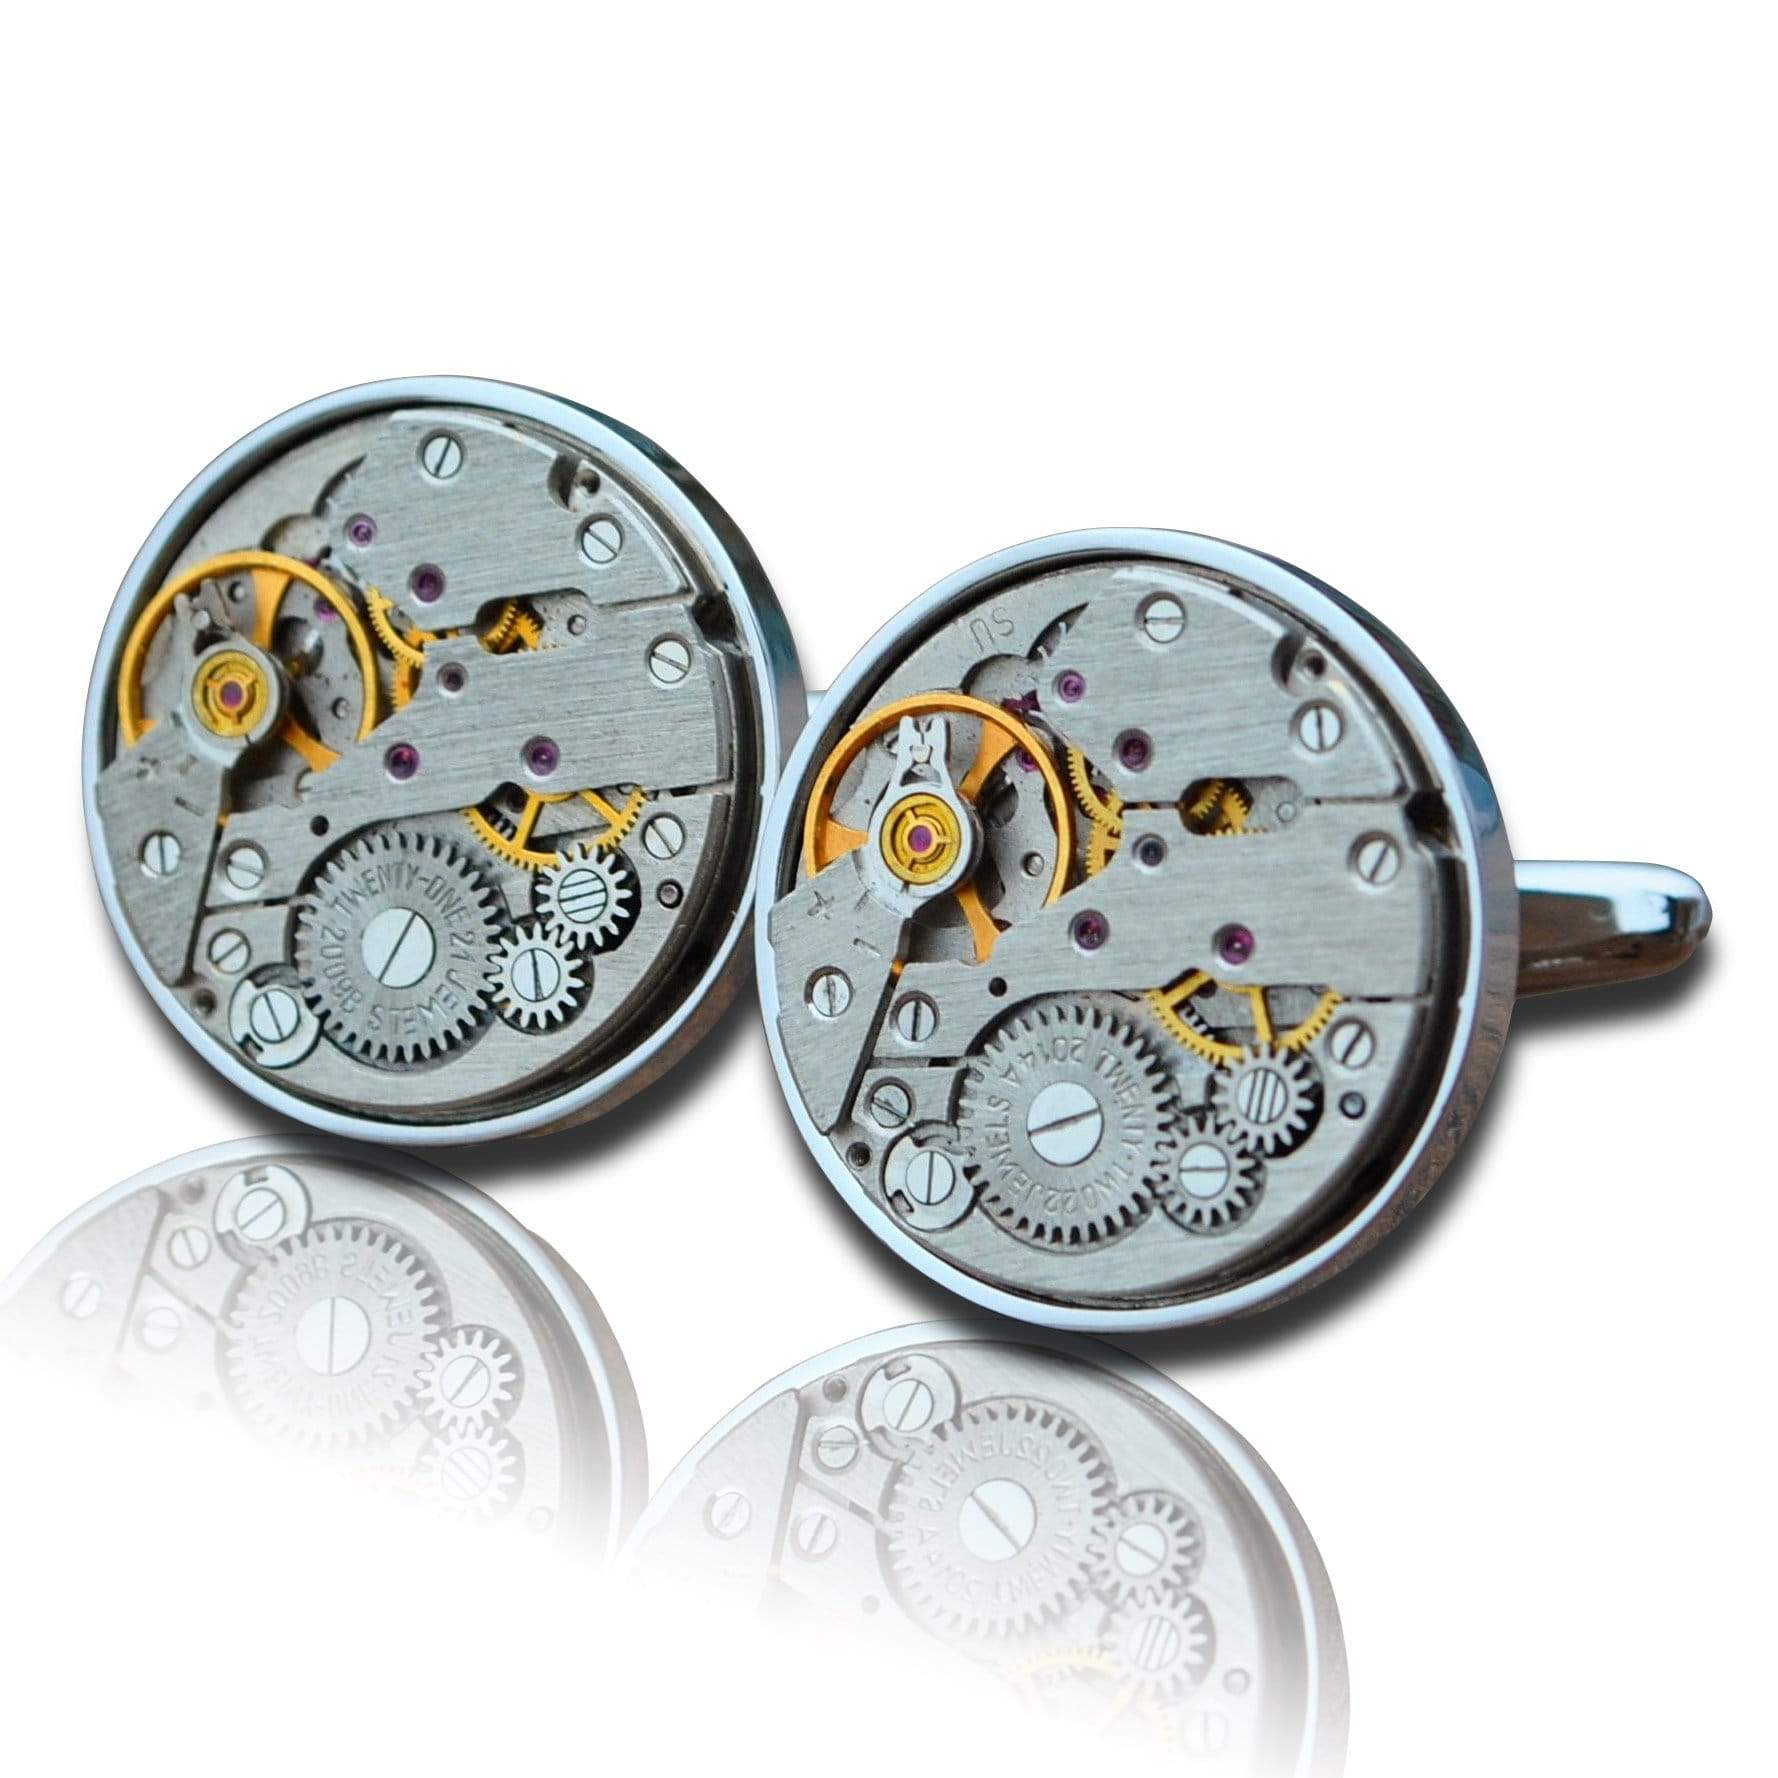 Men's Cufflinks | Lingo Luxe The Statham-Lingo Luxe Bespoke